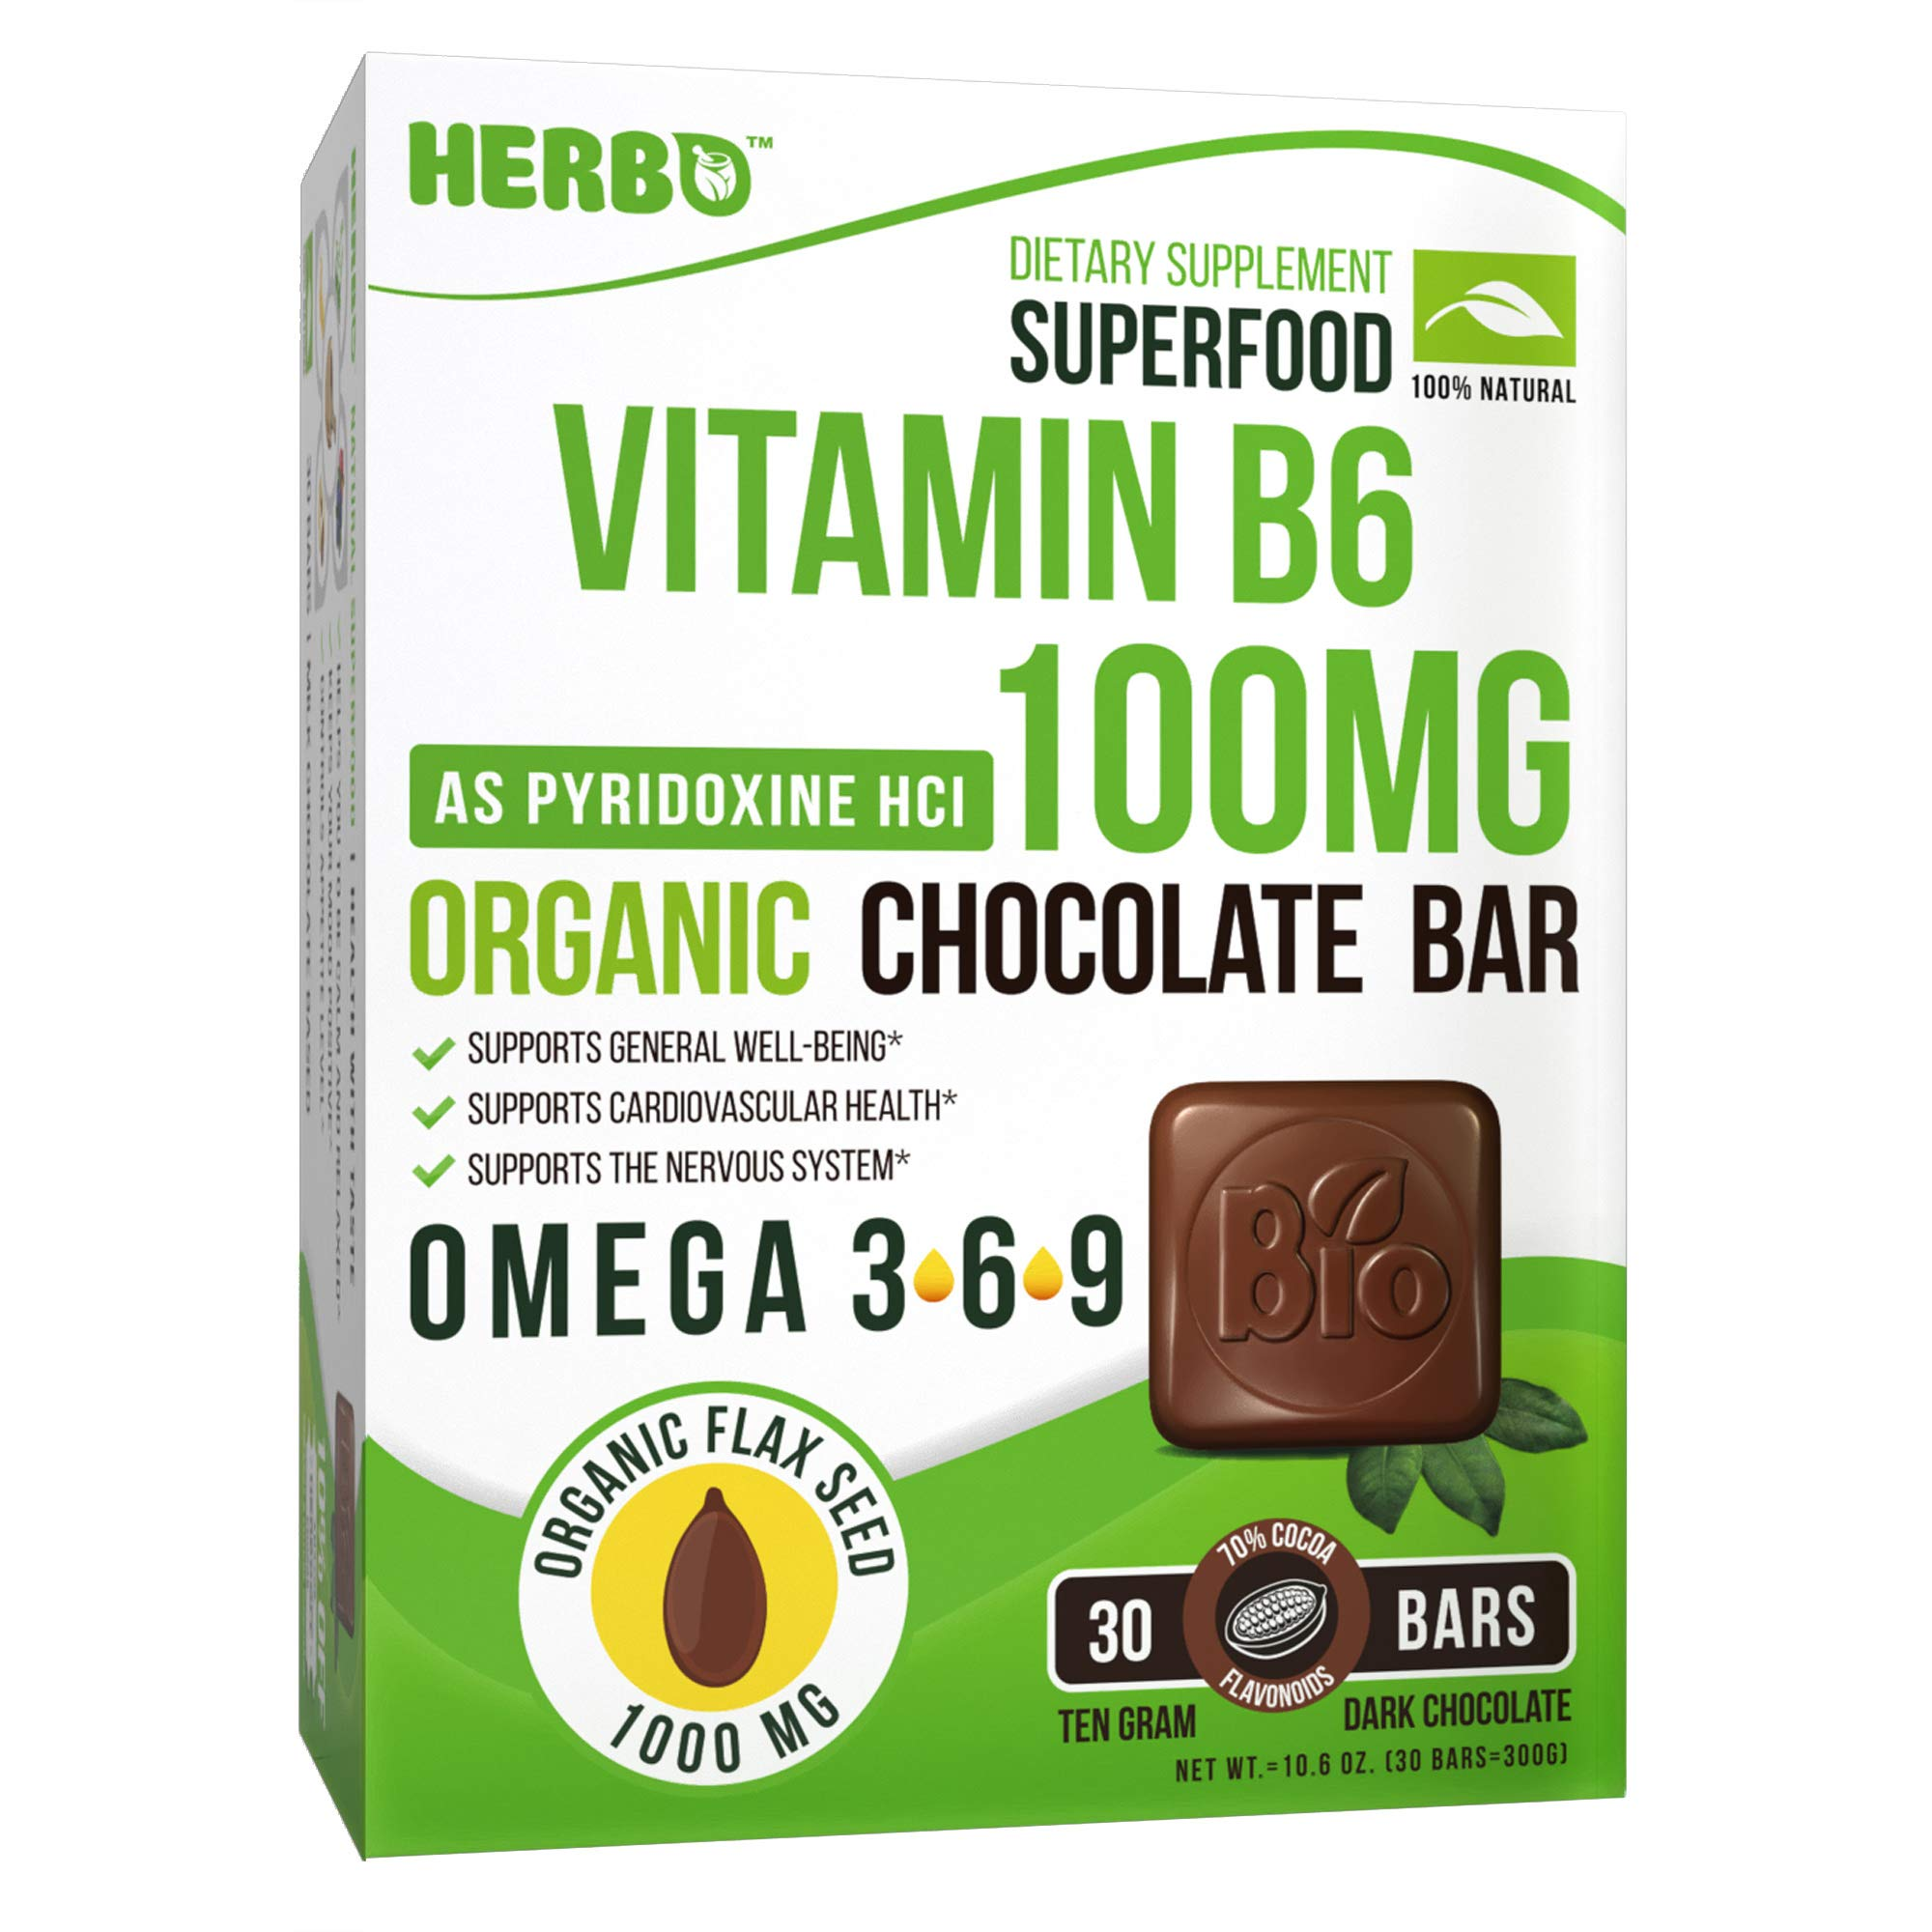 Herbo Superfood Vitamin B6 100 mg As Pyridoxine - Supplement in Organic Dark Chocolate - Best for Depression, Concentration, Immunity and Heart Health - with Omega 3 6 9 - Non-GMO, Gluten Free by HERBO SUPERFOOD